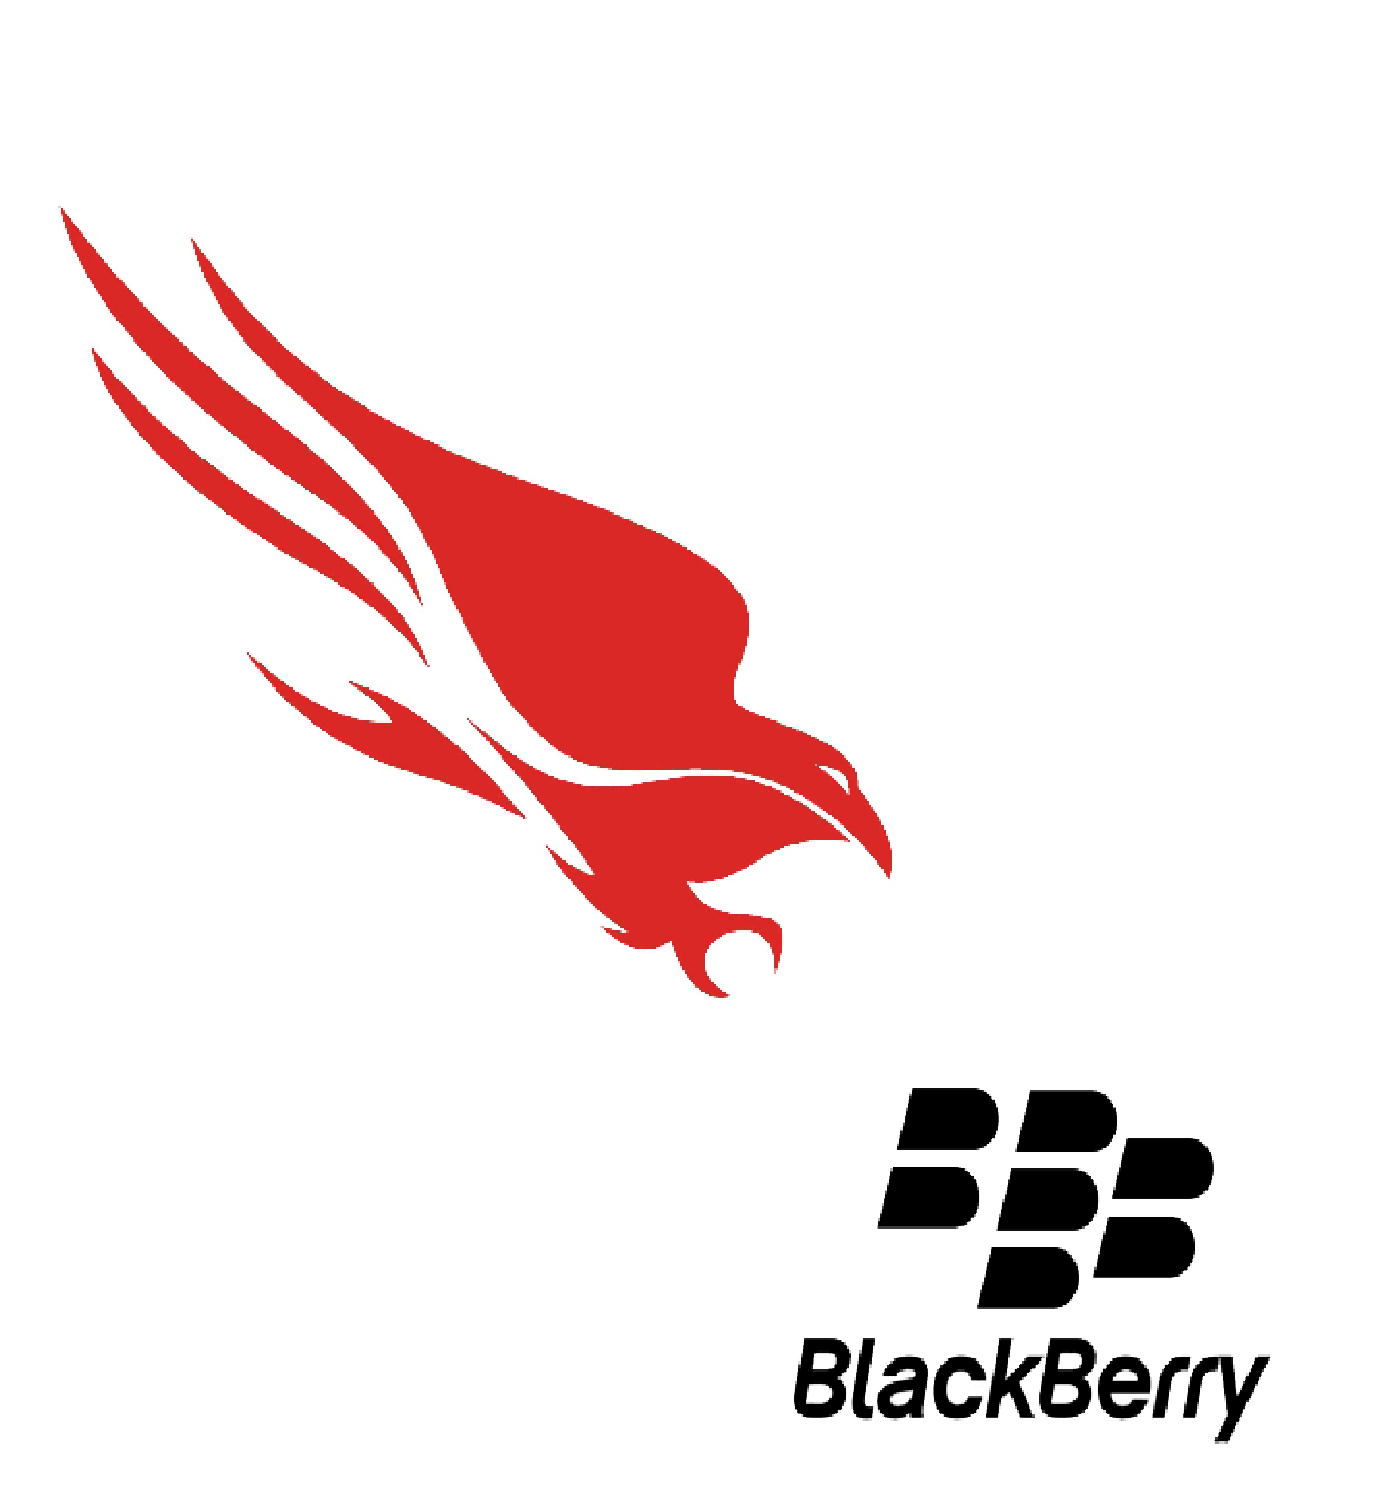 BlackBerry Might Need Another Name Change